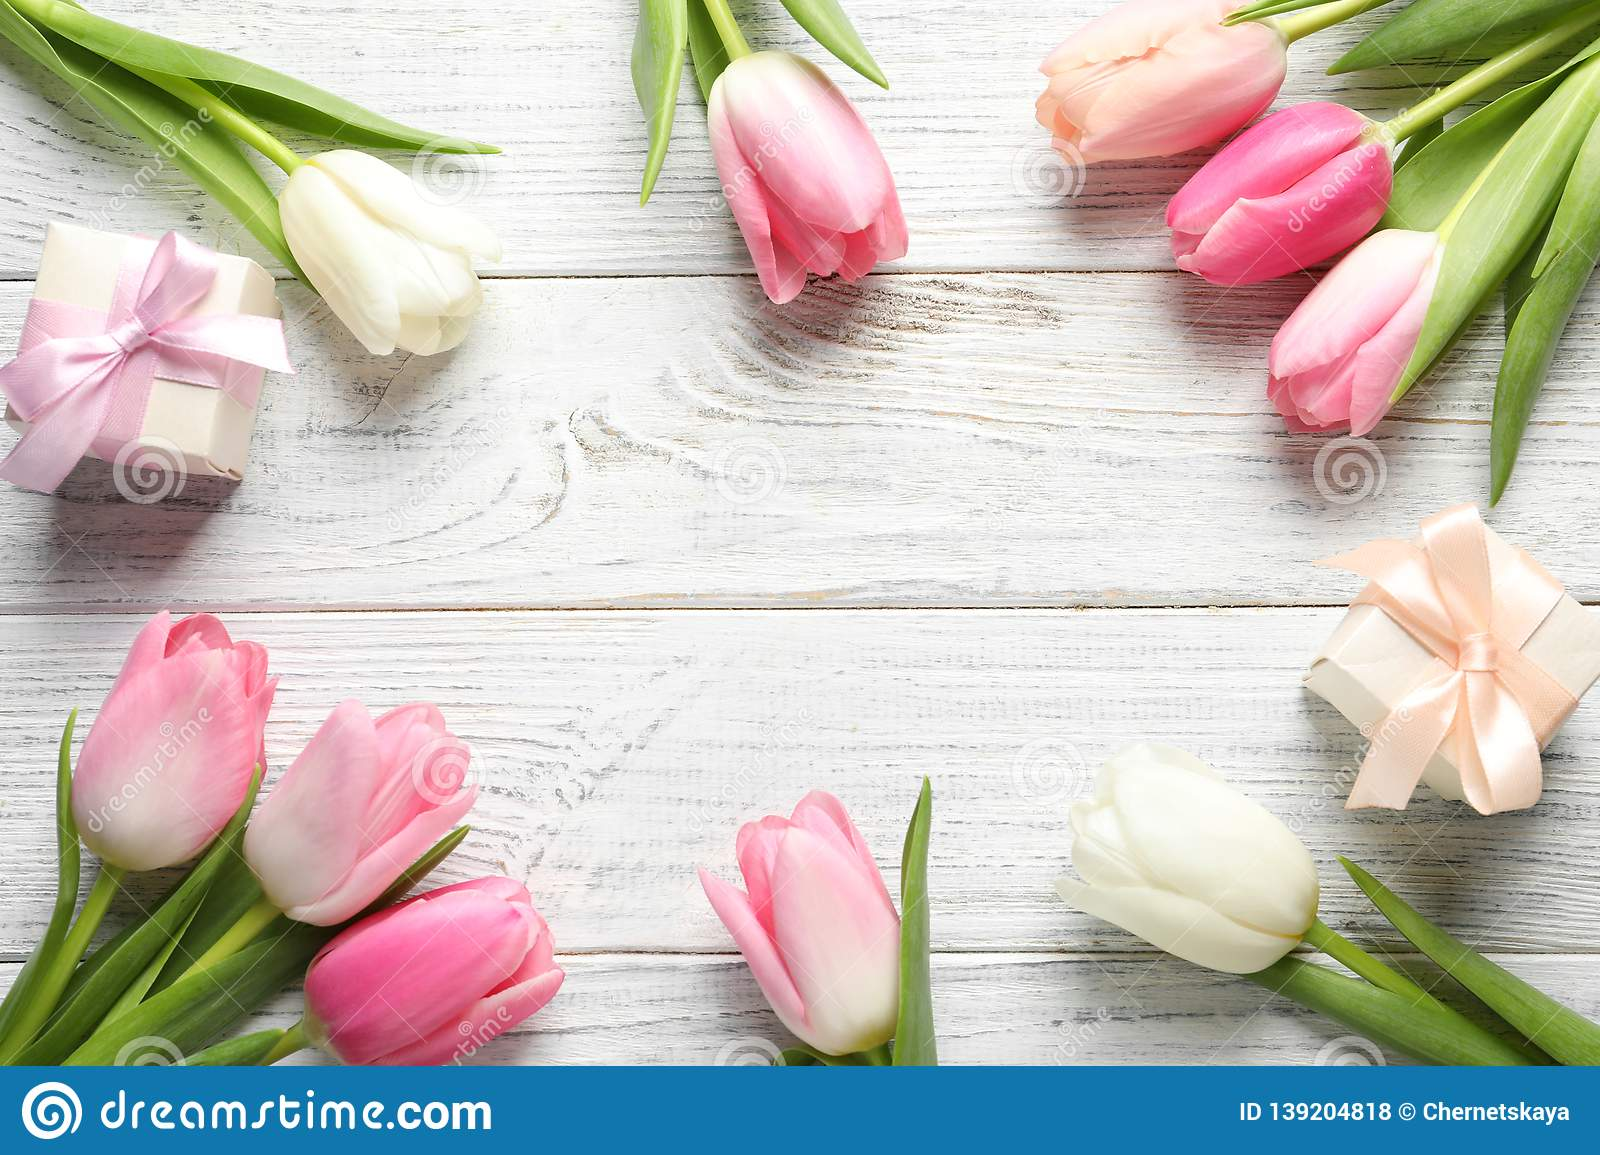 Flat lay composition of beautiful spring tulips on wooden background, space for text.